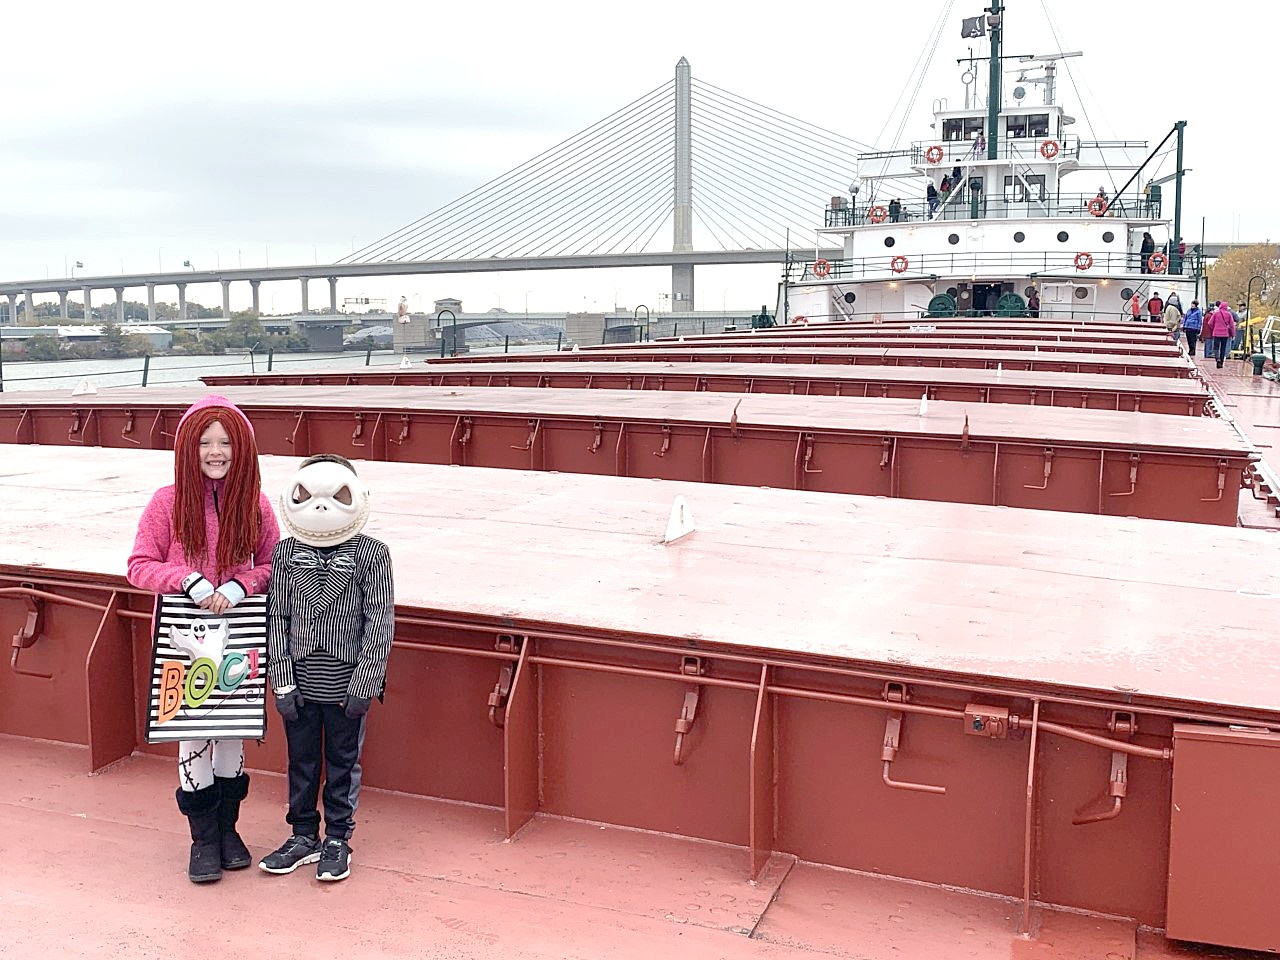 The National Museum of the Great Lakes invites young goblins and ghouls visit the museum in costume from Oct. 24-31 to trick-or-treat aboard two of Toledo's most historic haunts, the Col. James M. Schoonmaker Museum Ship and the Museum Tug Ohio. (Submitted photo)